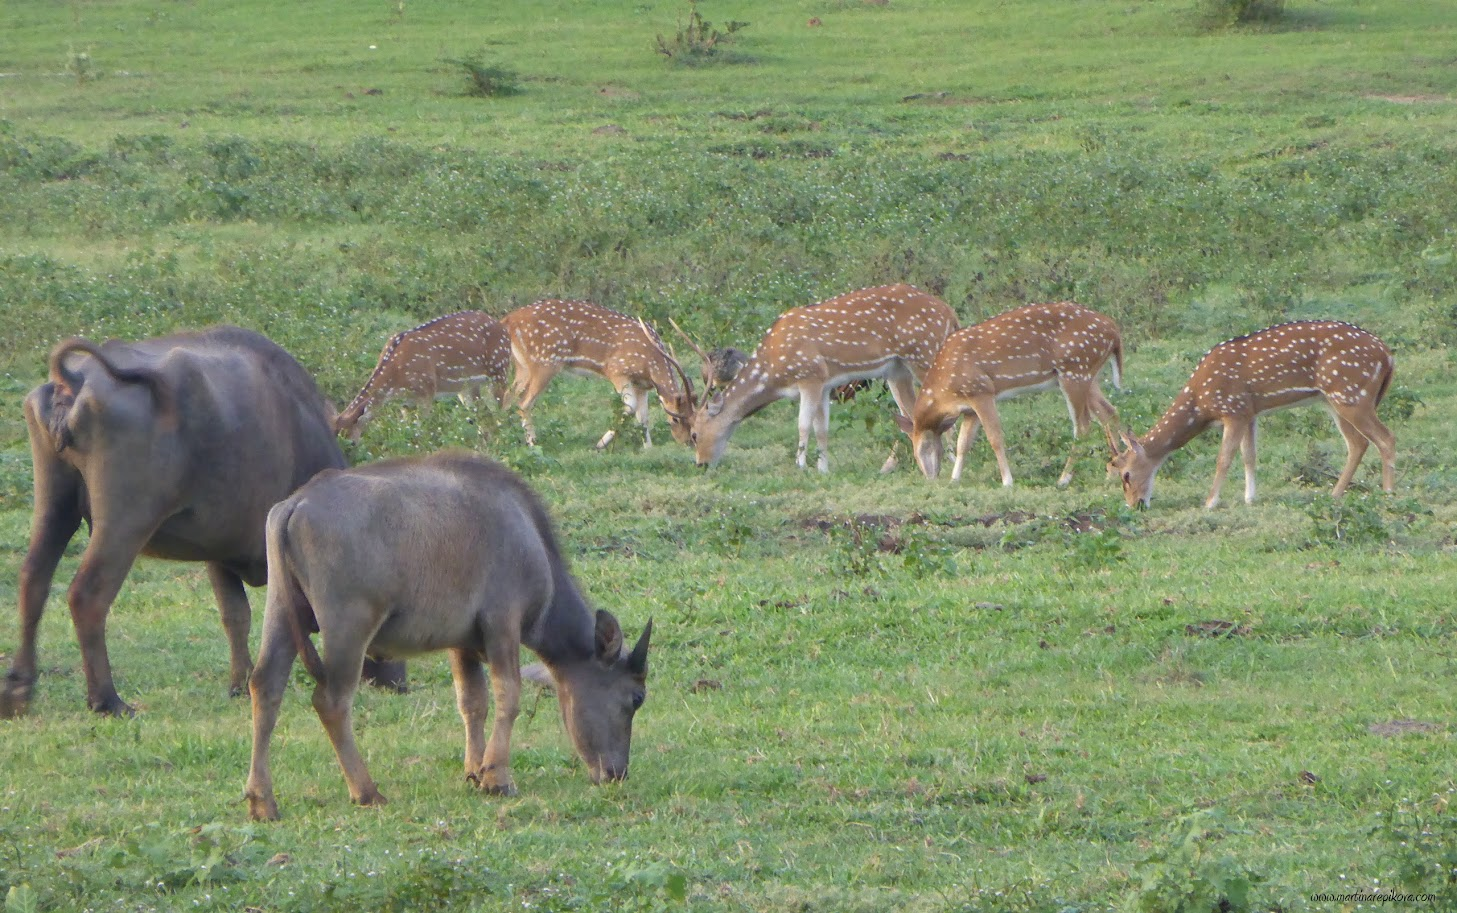 A herd of deers and buffaloes, Uda Walawe, Sri Lanka